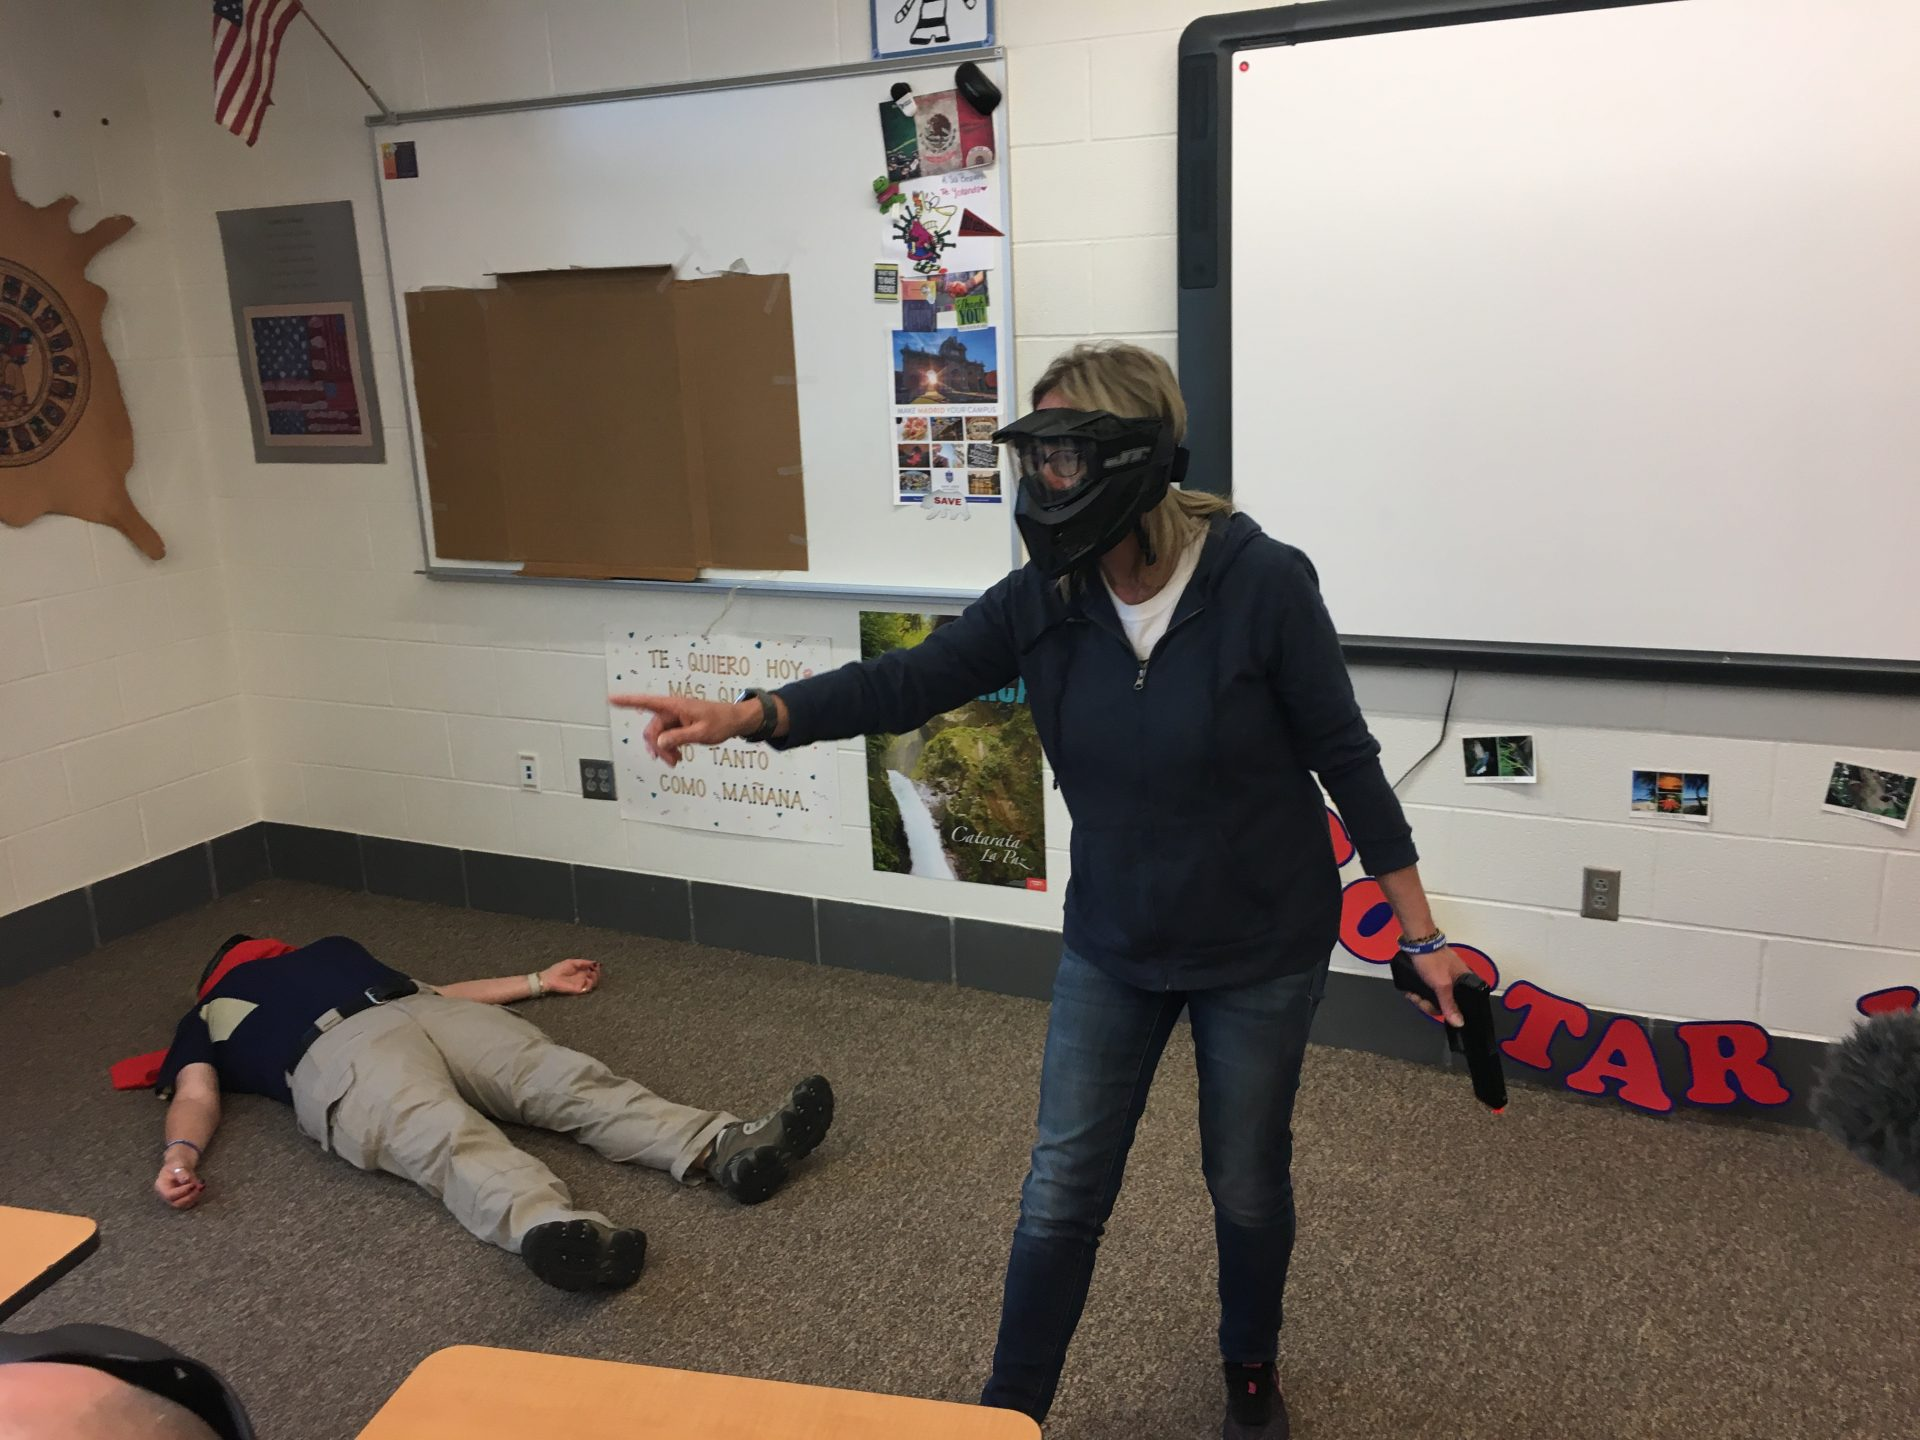 Angie directs students during a shooting simulation.